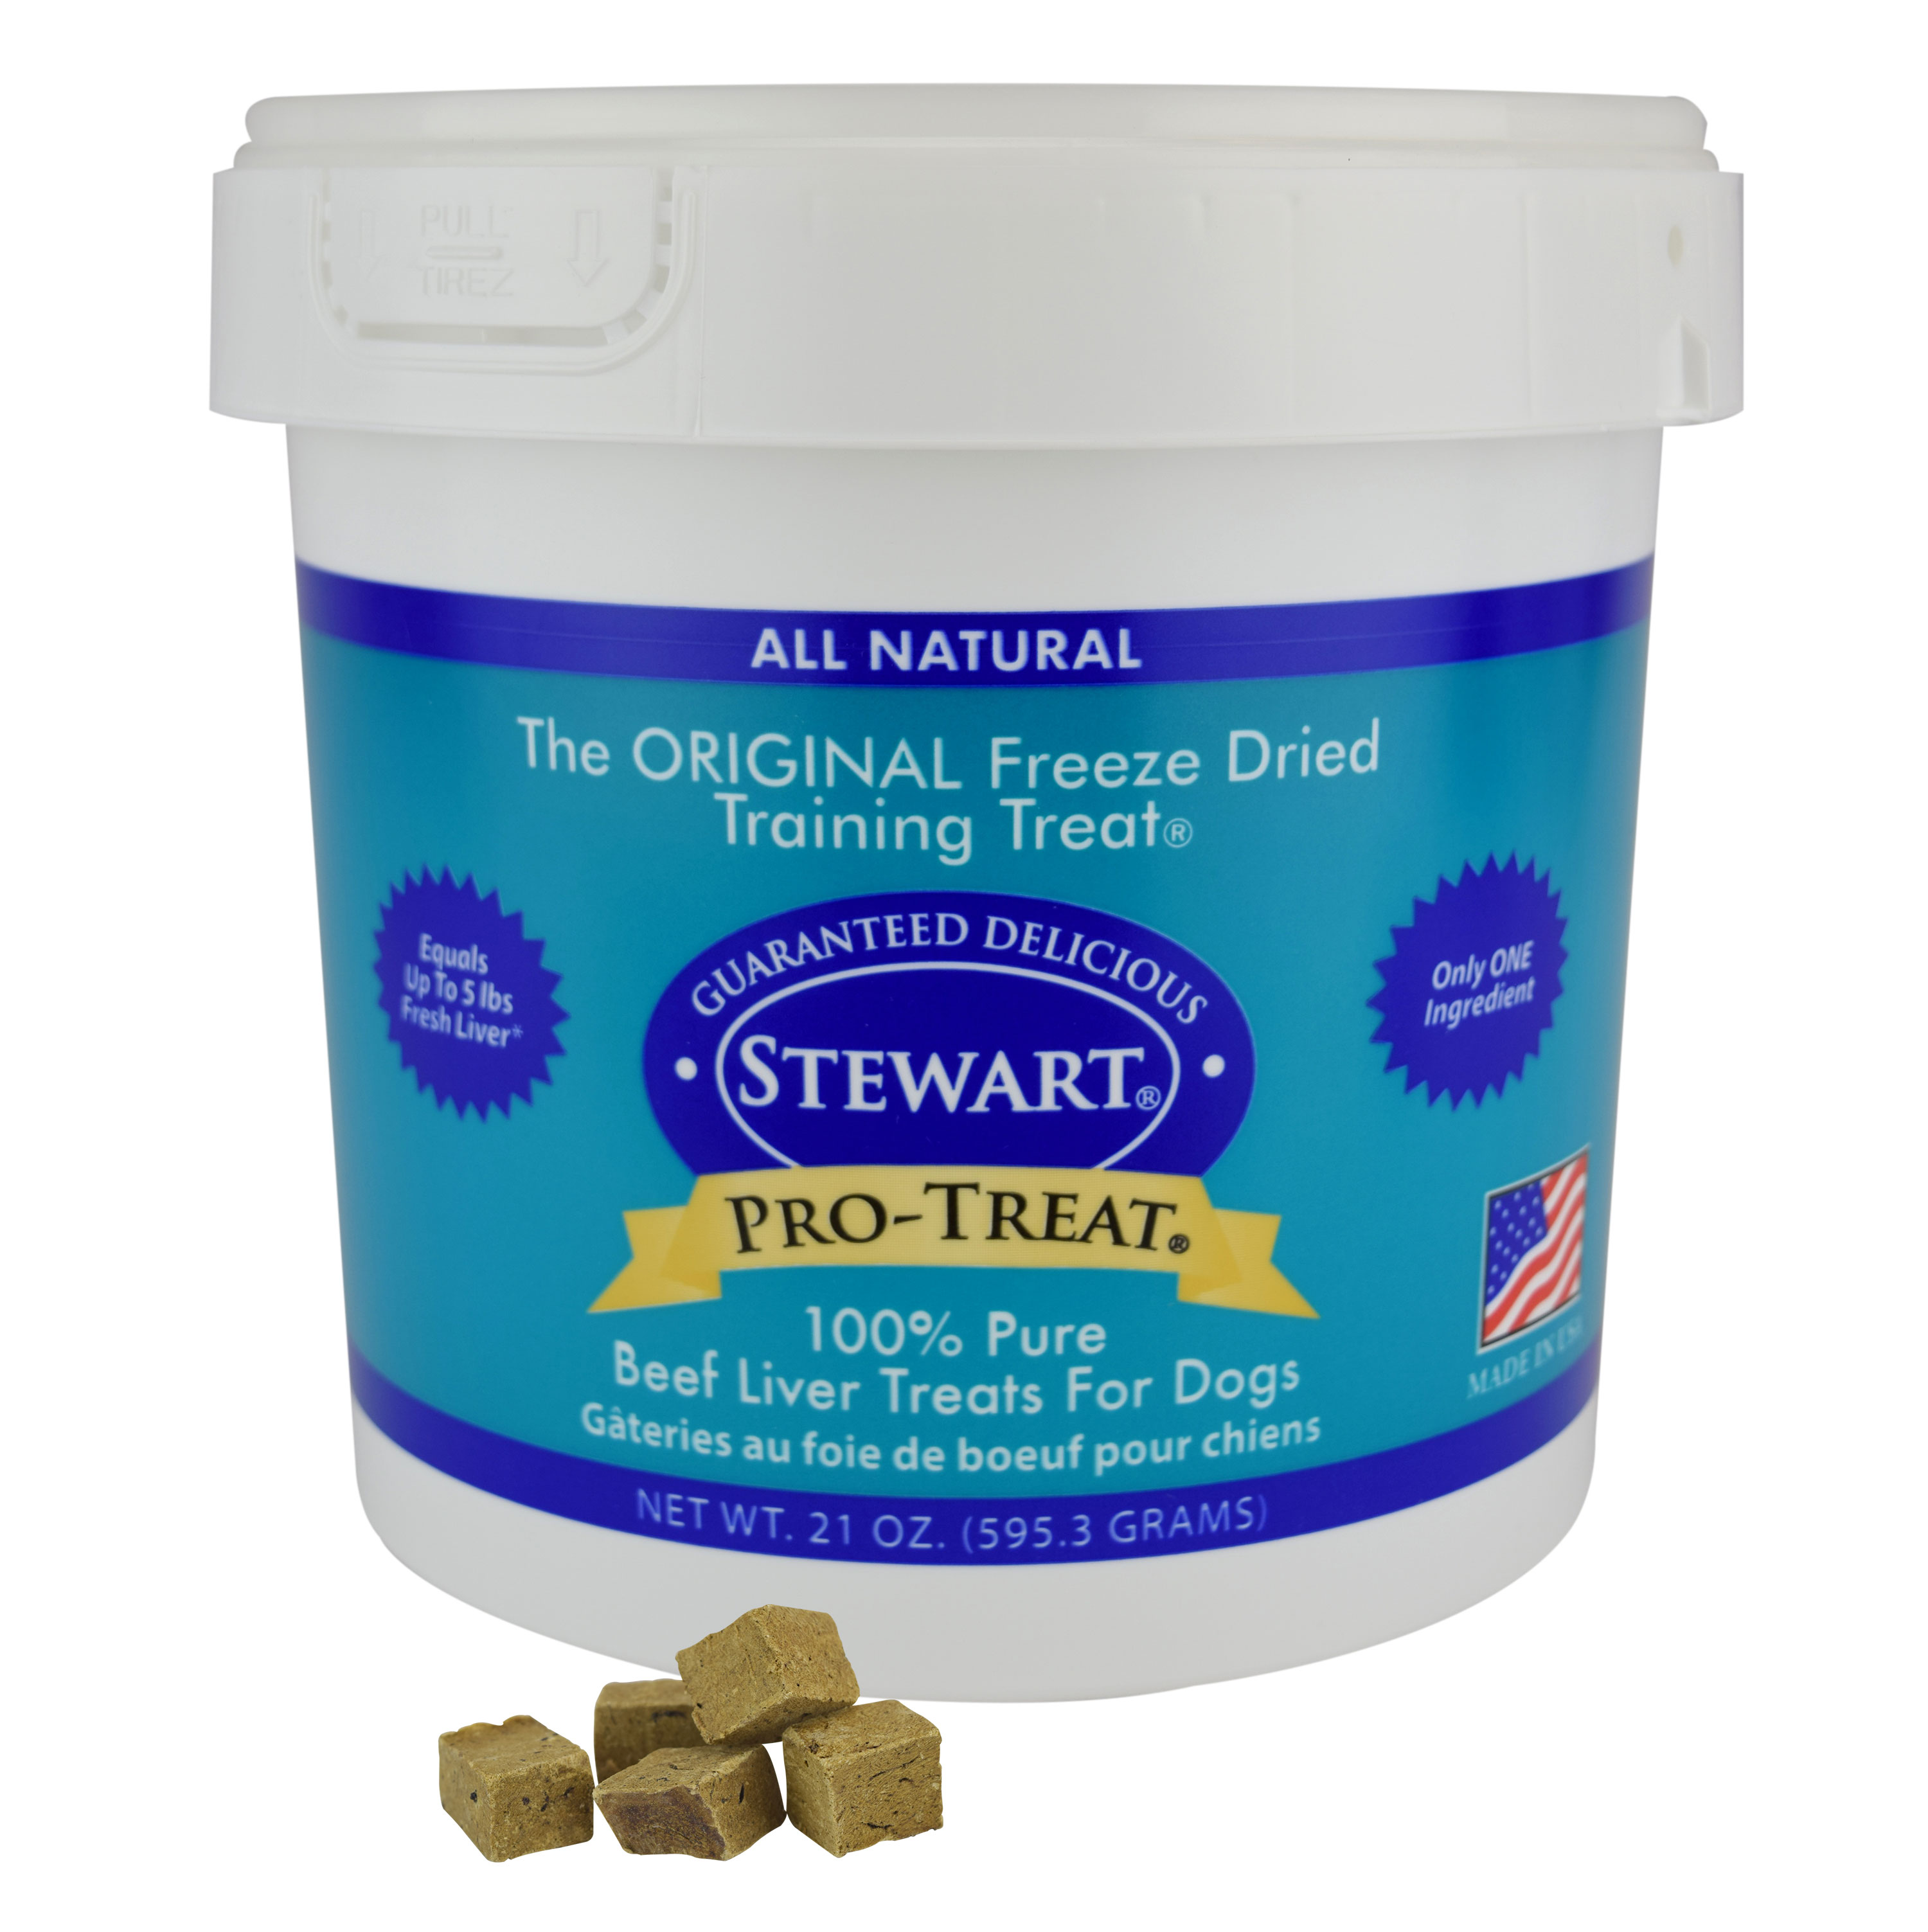 Stewart Freeze Dried Beef Liver by Pro-Treat, 21 oz. Tub